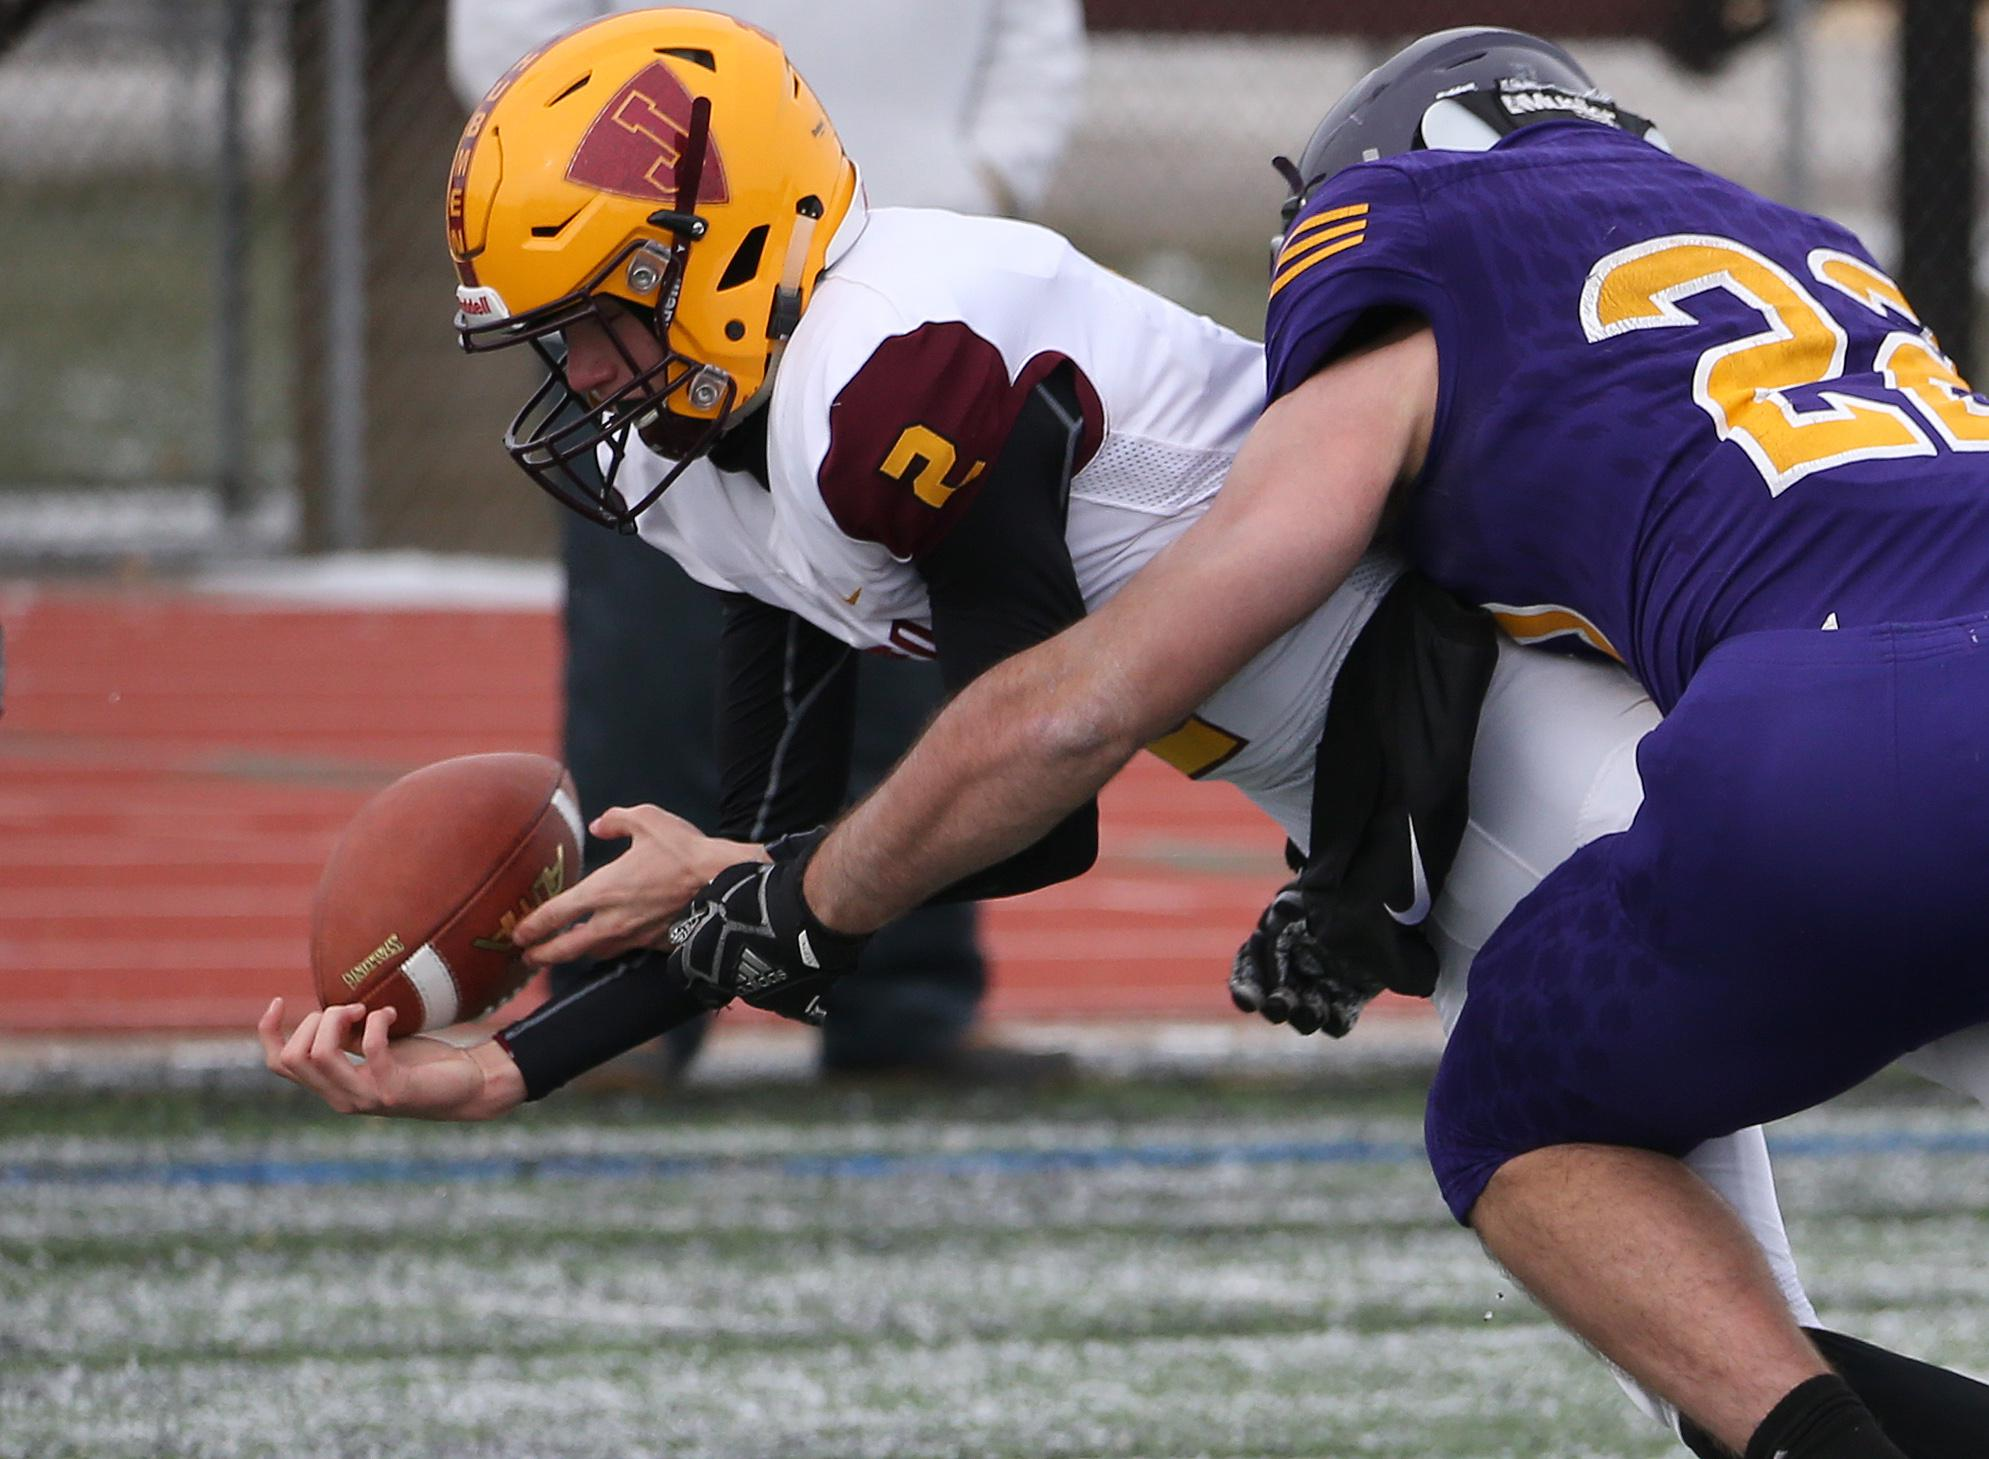 Bryce Sievers (2) is brought down by Jake Groteboer (22) forcing a turnover on the opening drive of the game. Jordan fell to Rochester Lourdes 24-0 after suffering four turnovers in the first half. Photo by Cheryl Myers, SportsEngine